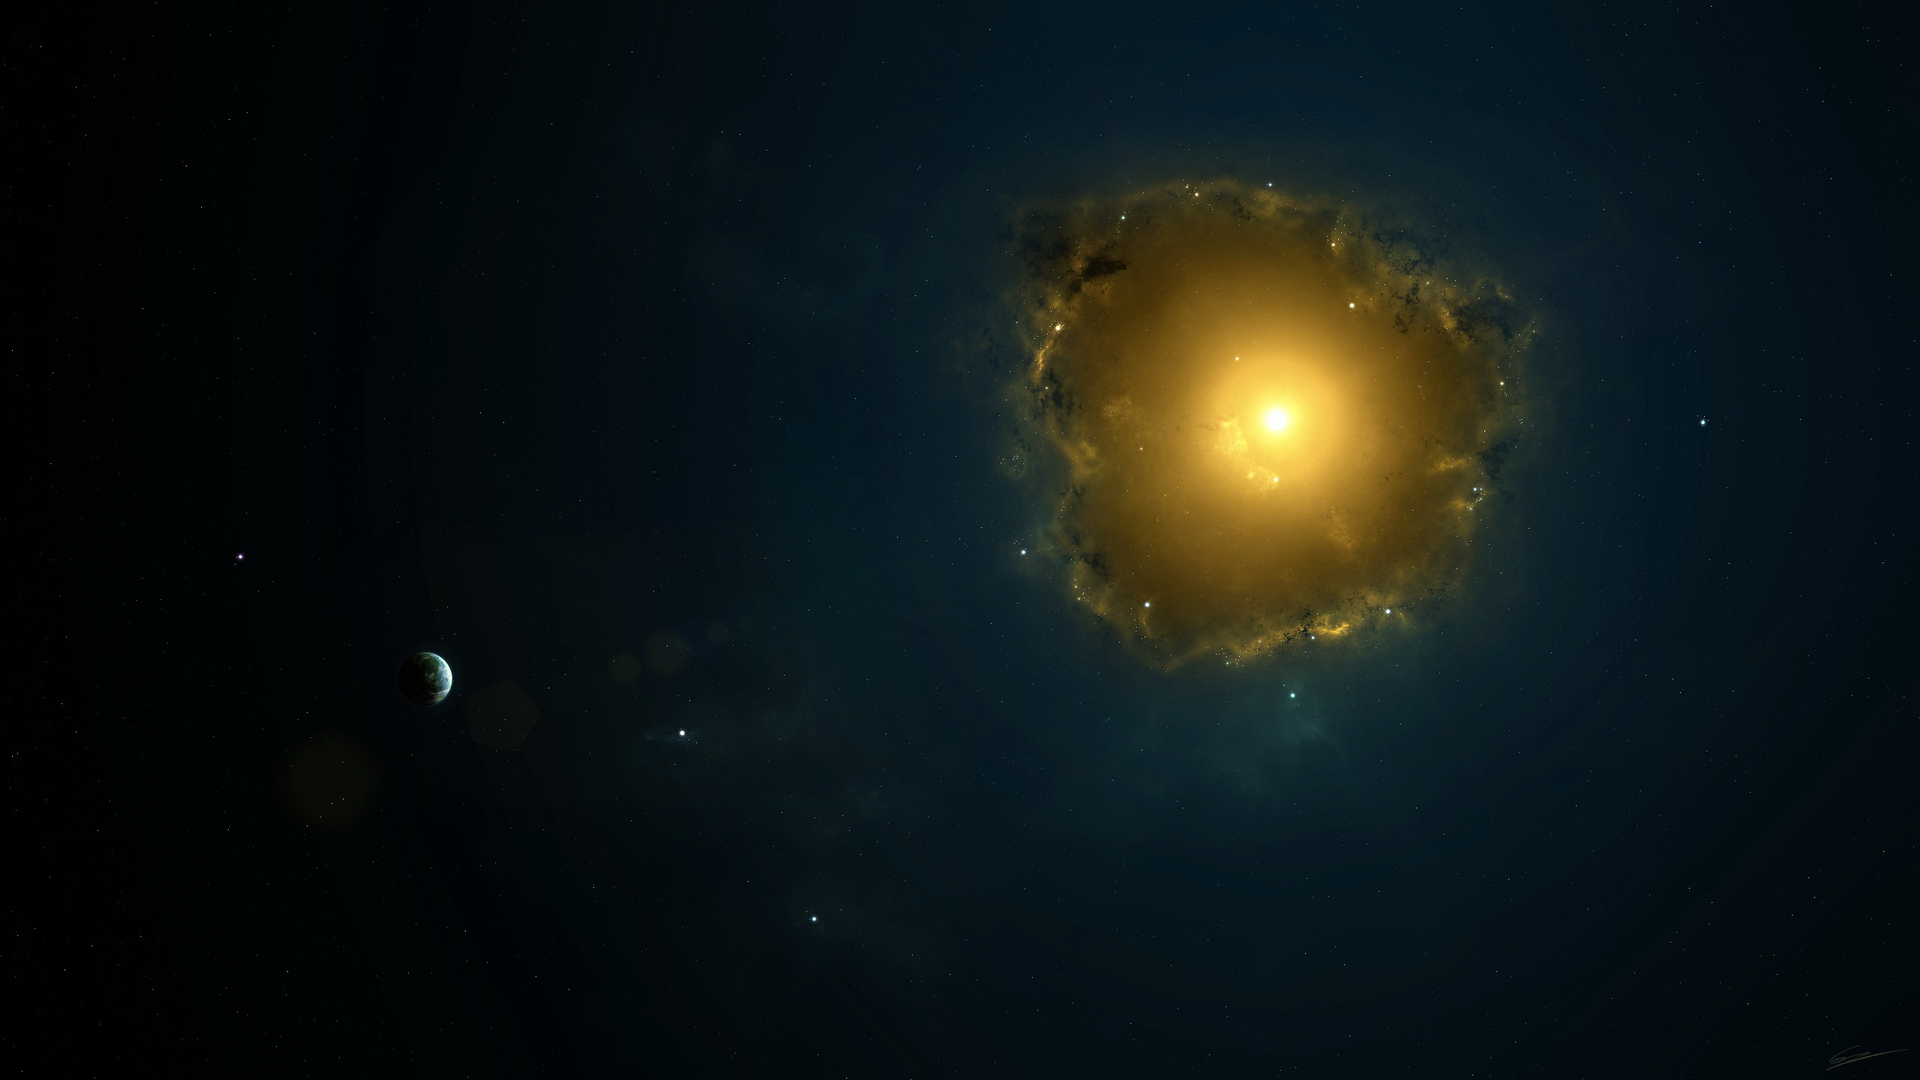 HD Space Wallpapers 1920 x 1080 Resolution 1920x1080